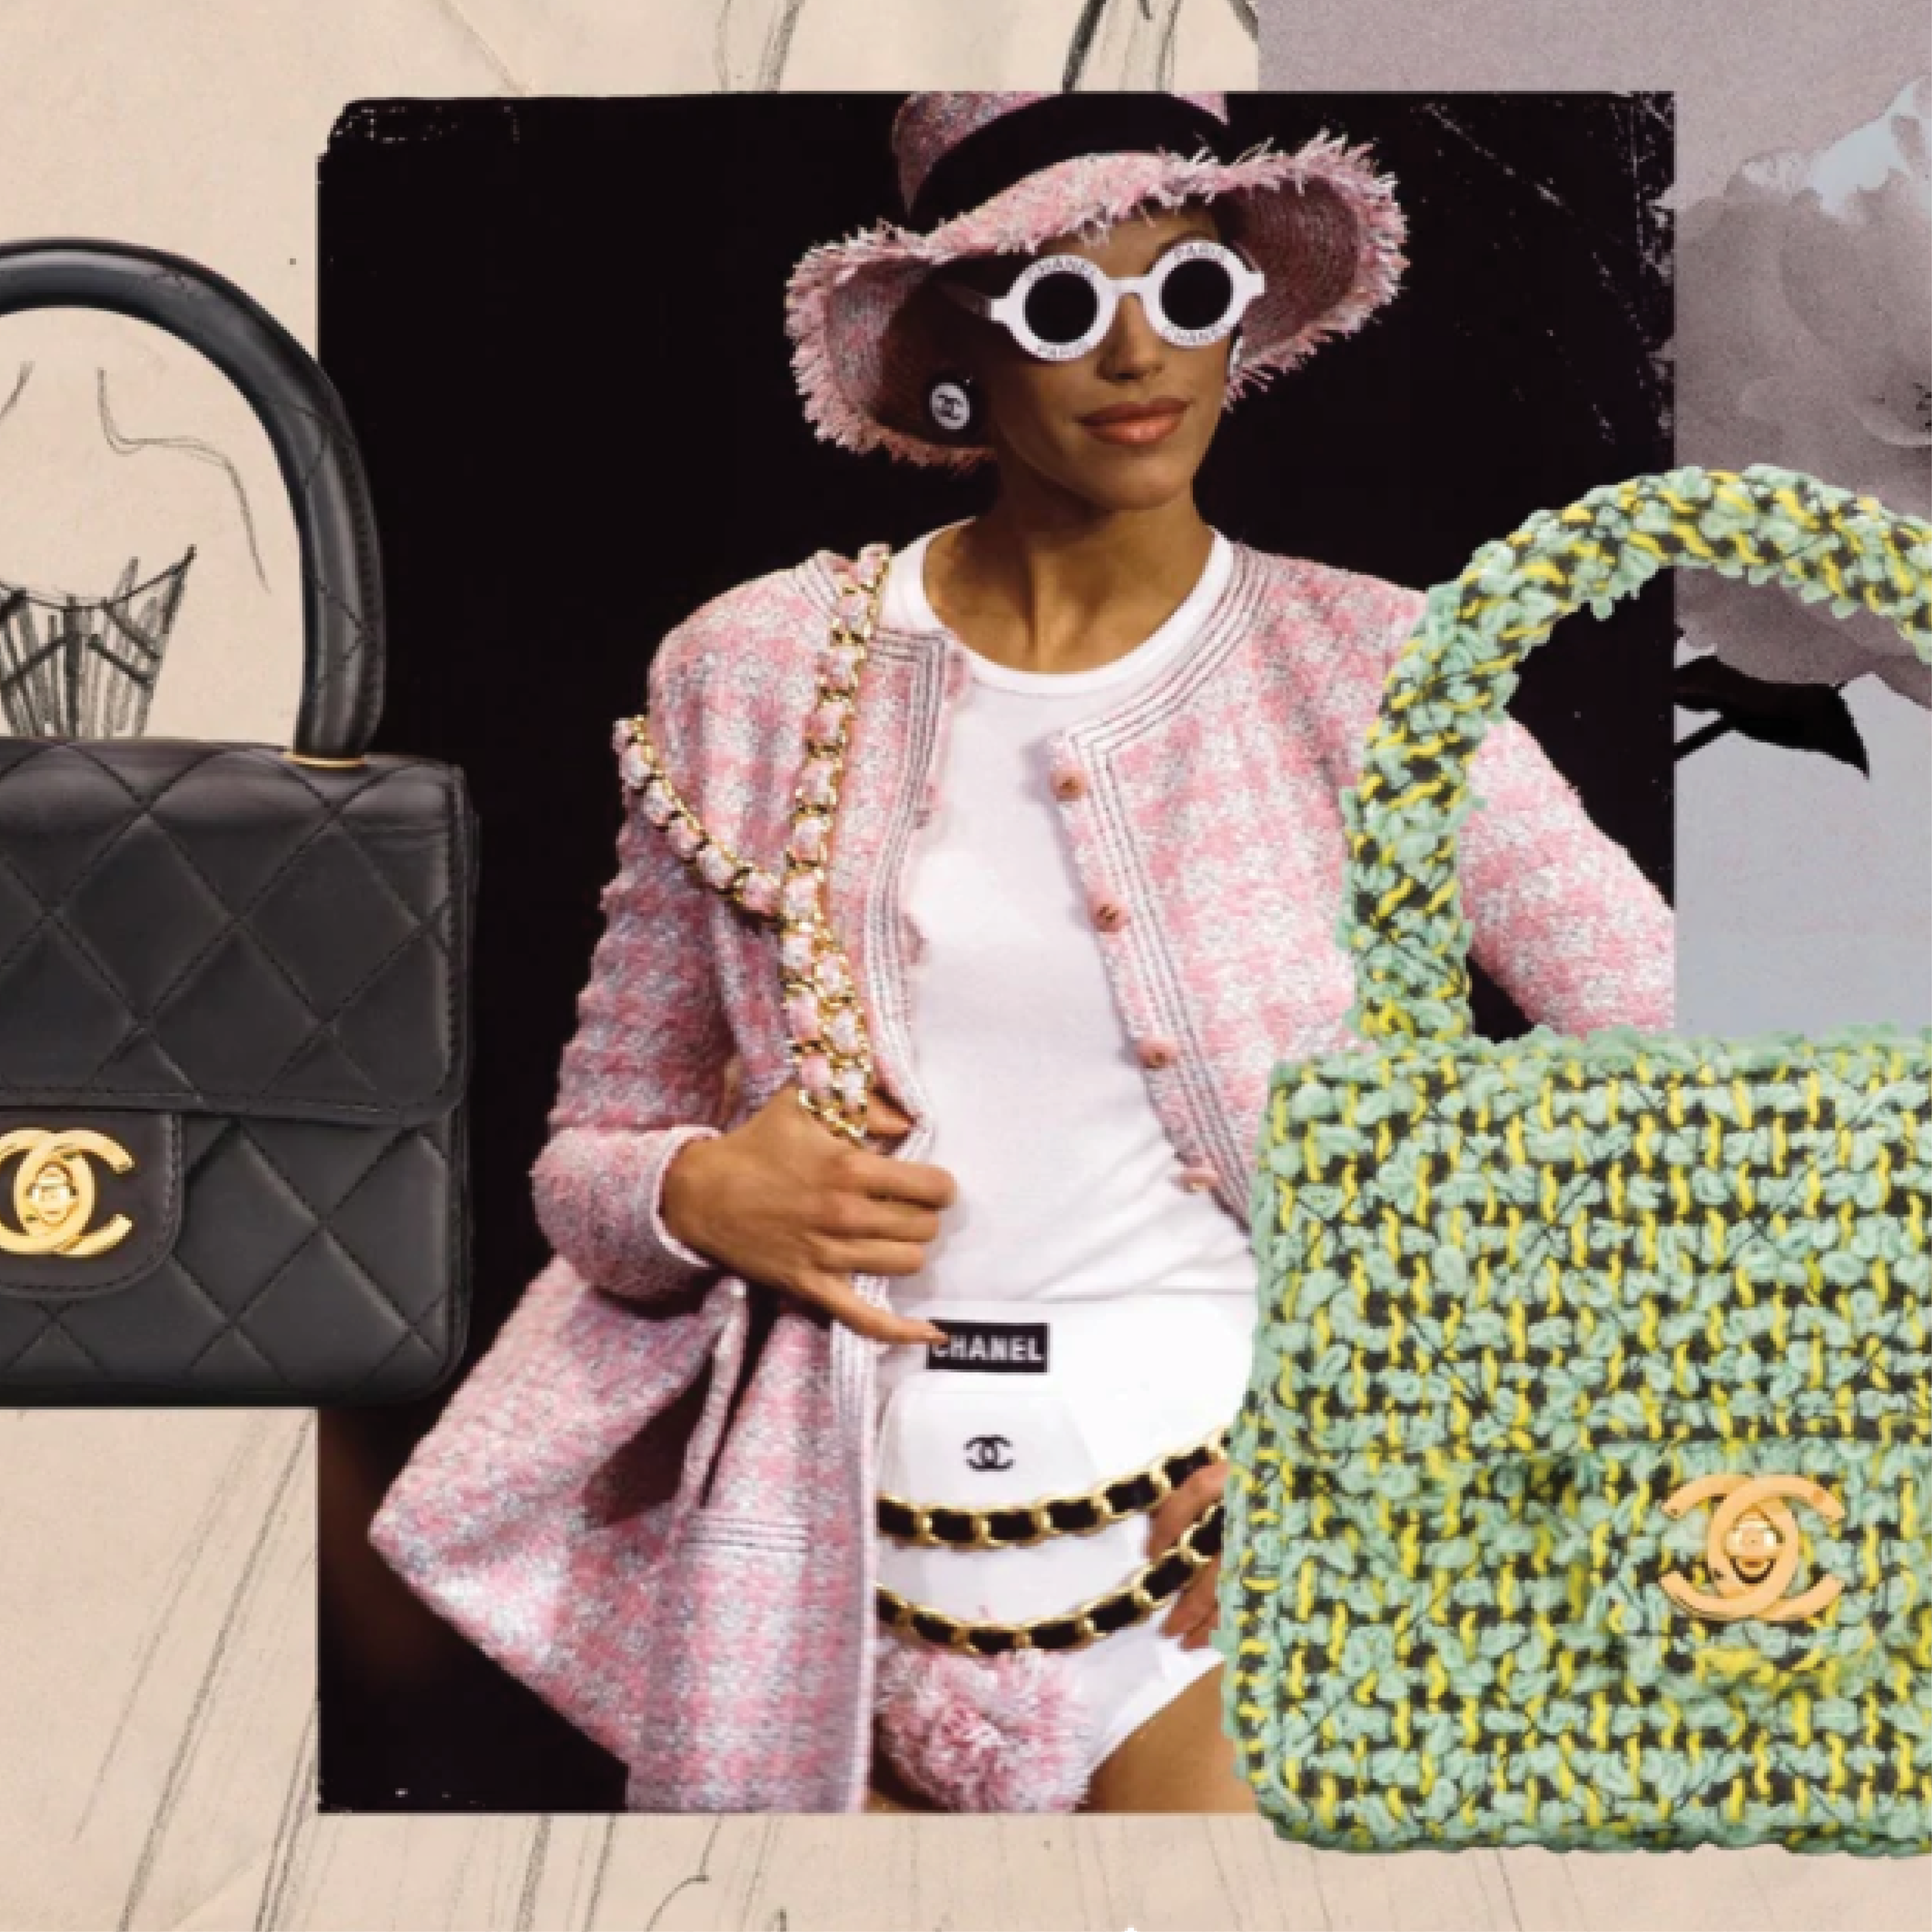 Farfetch Debuts Our Collection of Coveted Chanel